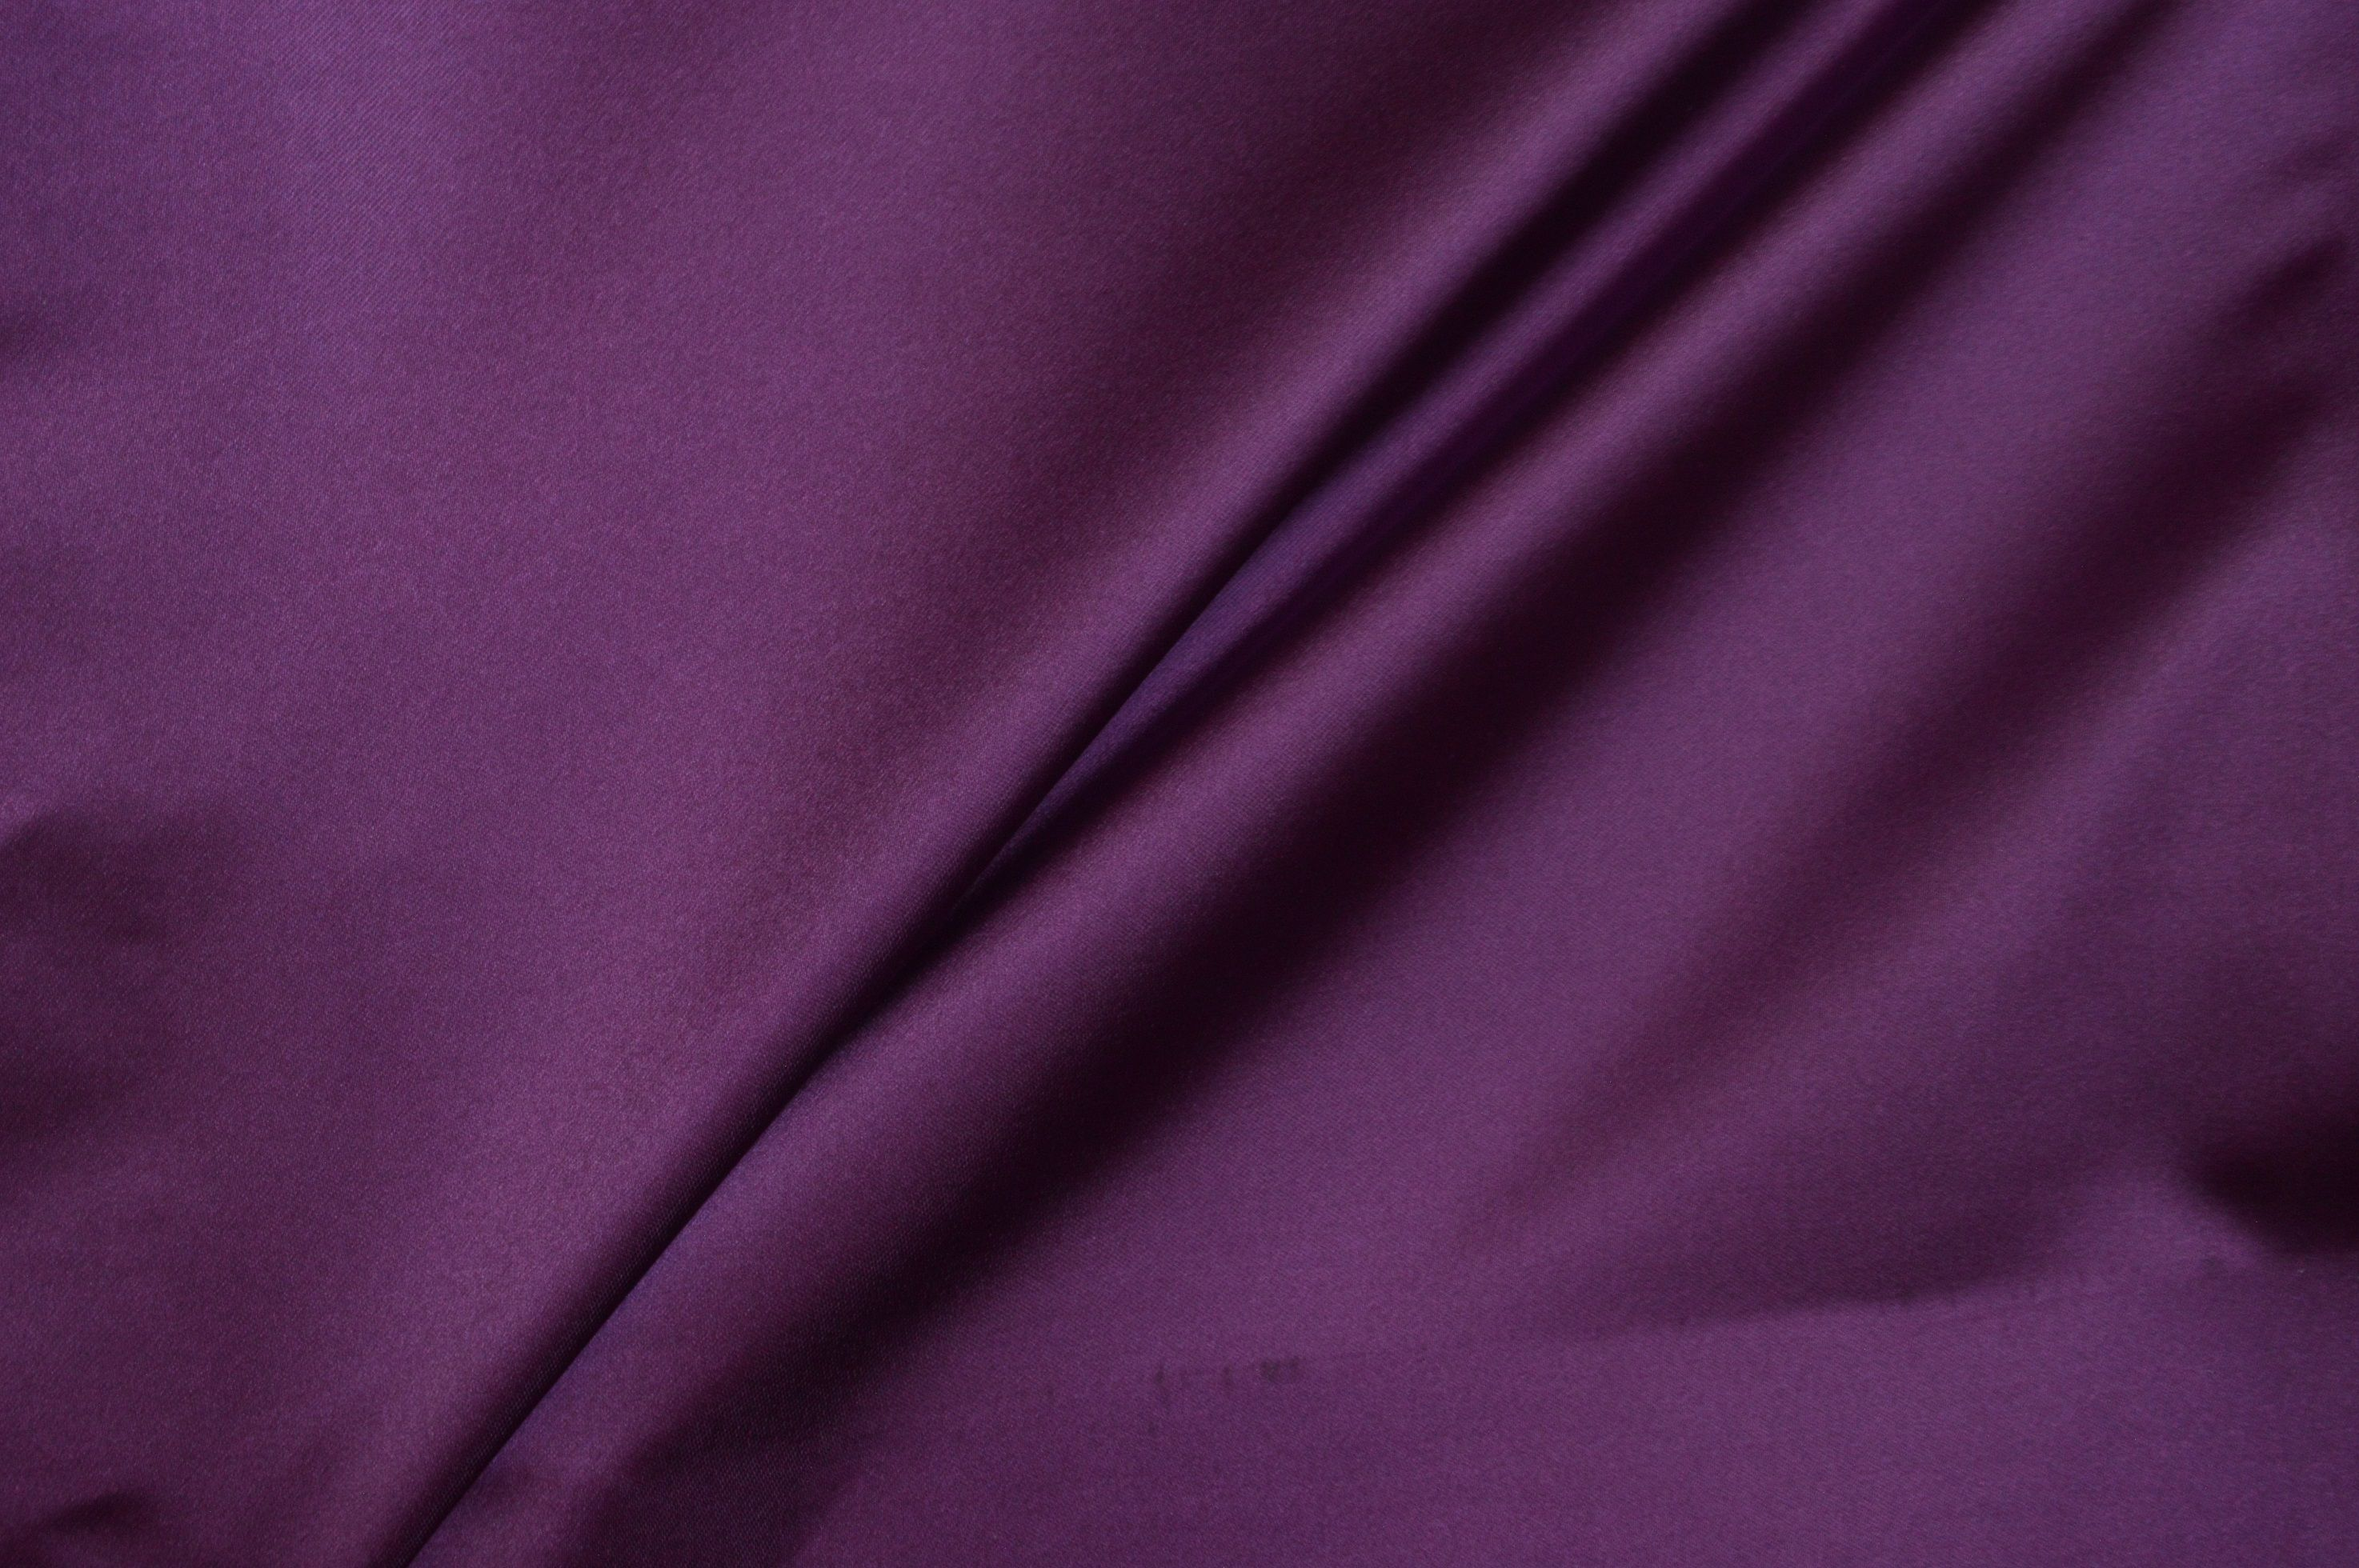 drapes after pin i canopy my hung curtains curtain homemade rods or purple the bed on and sheer